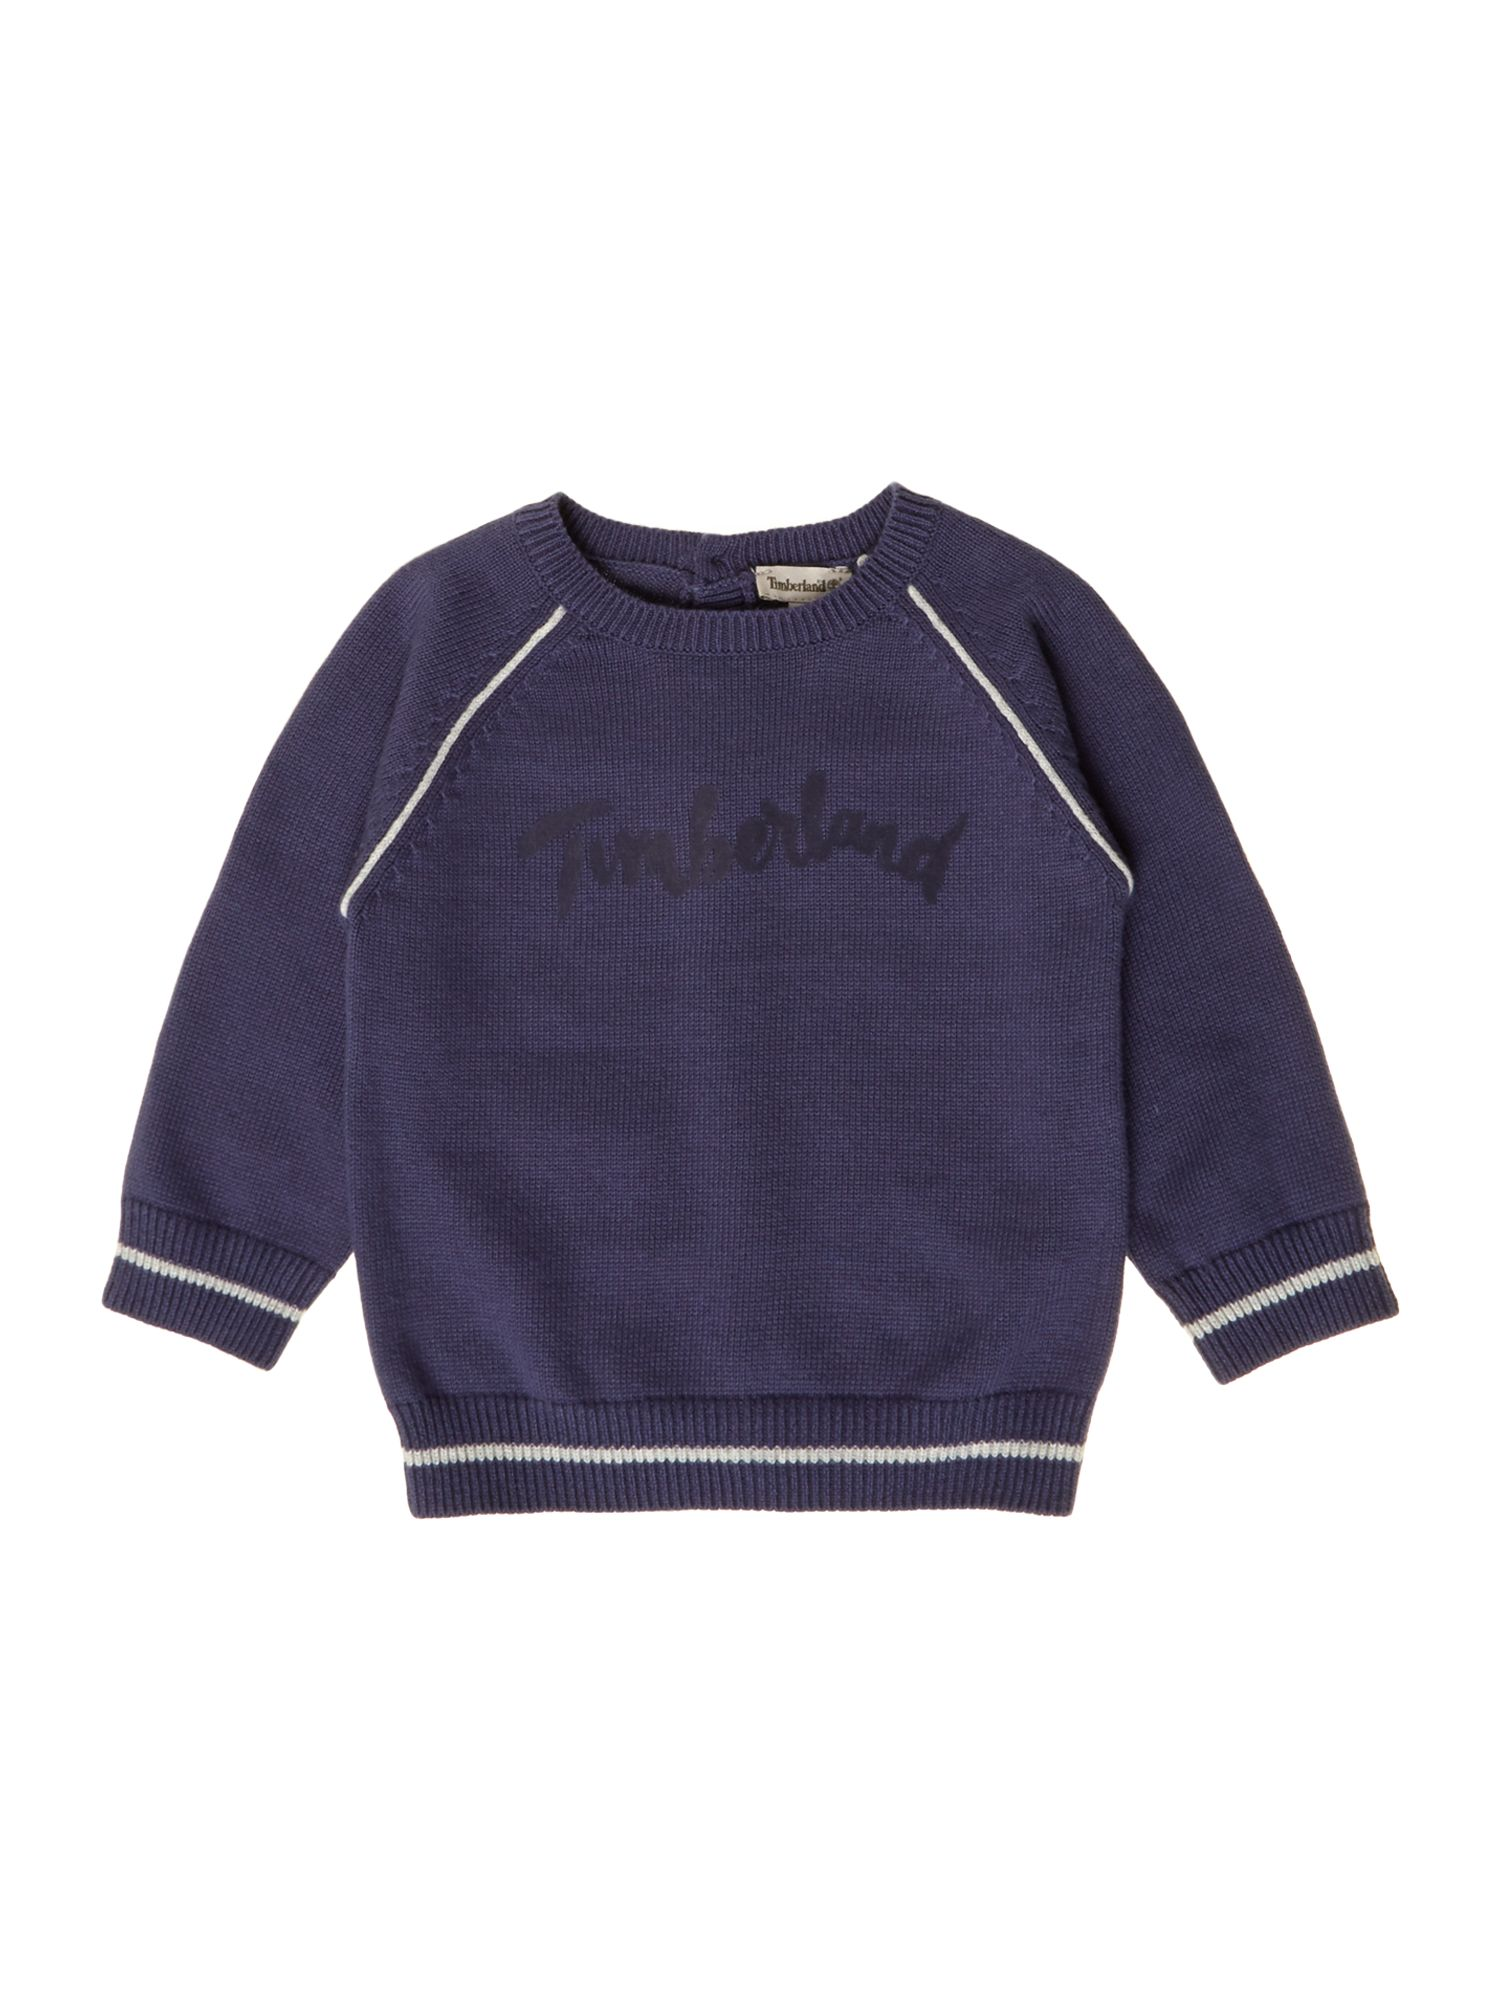 Boys knitted long sleeve sweater